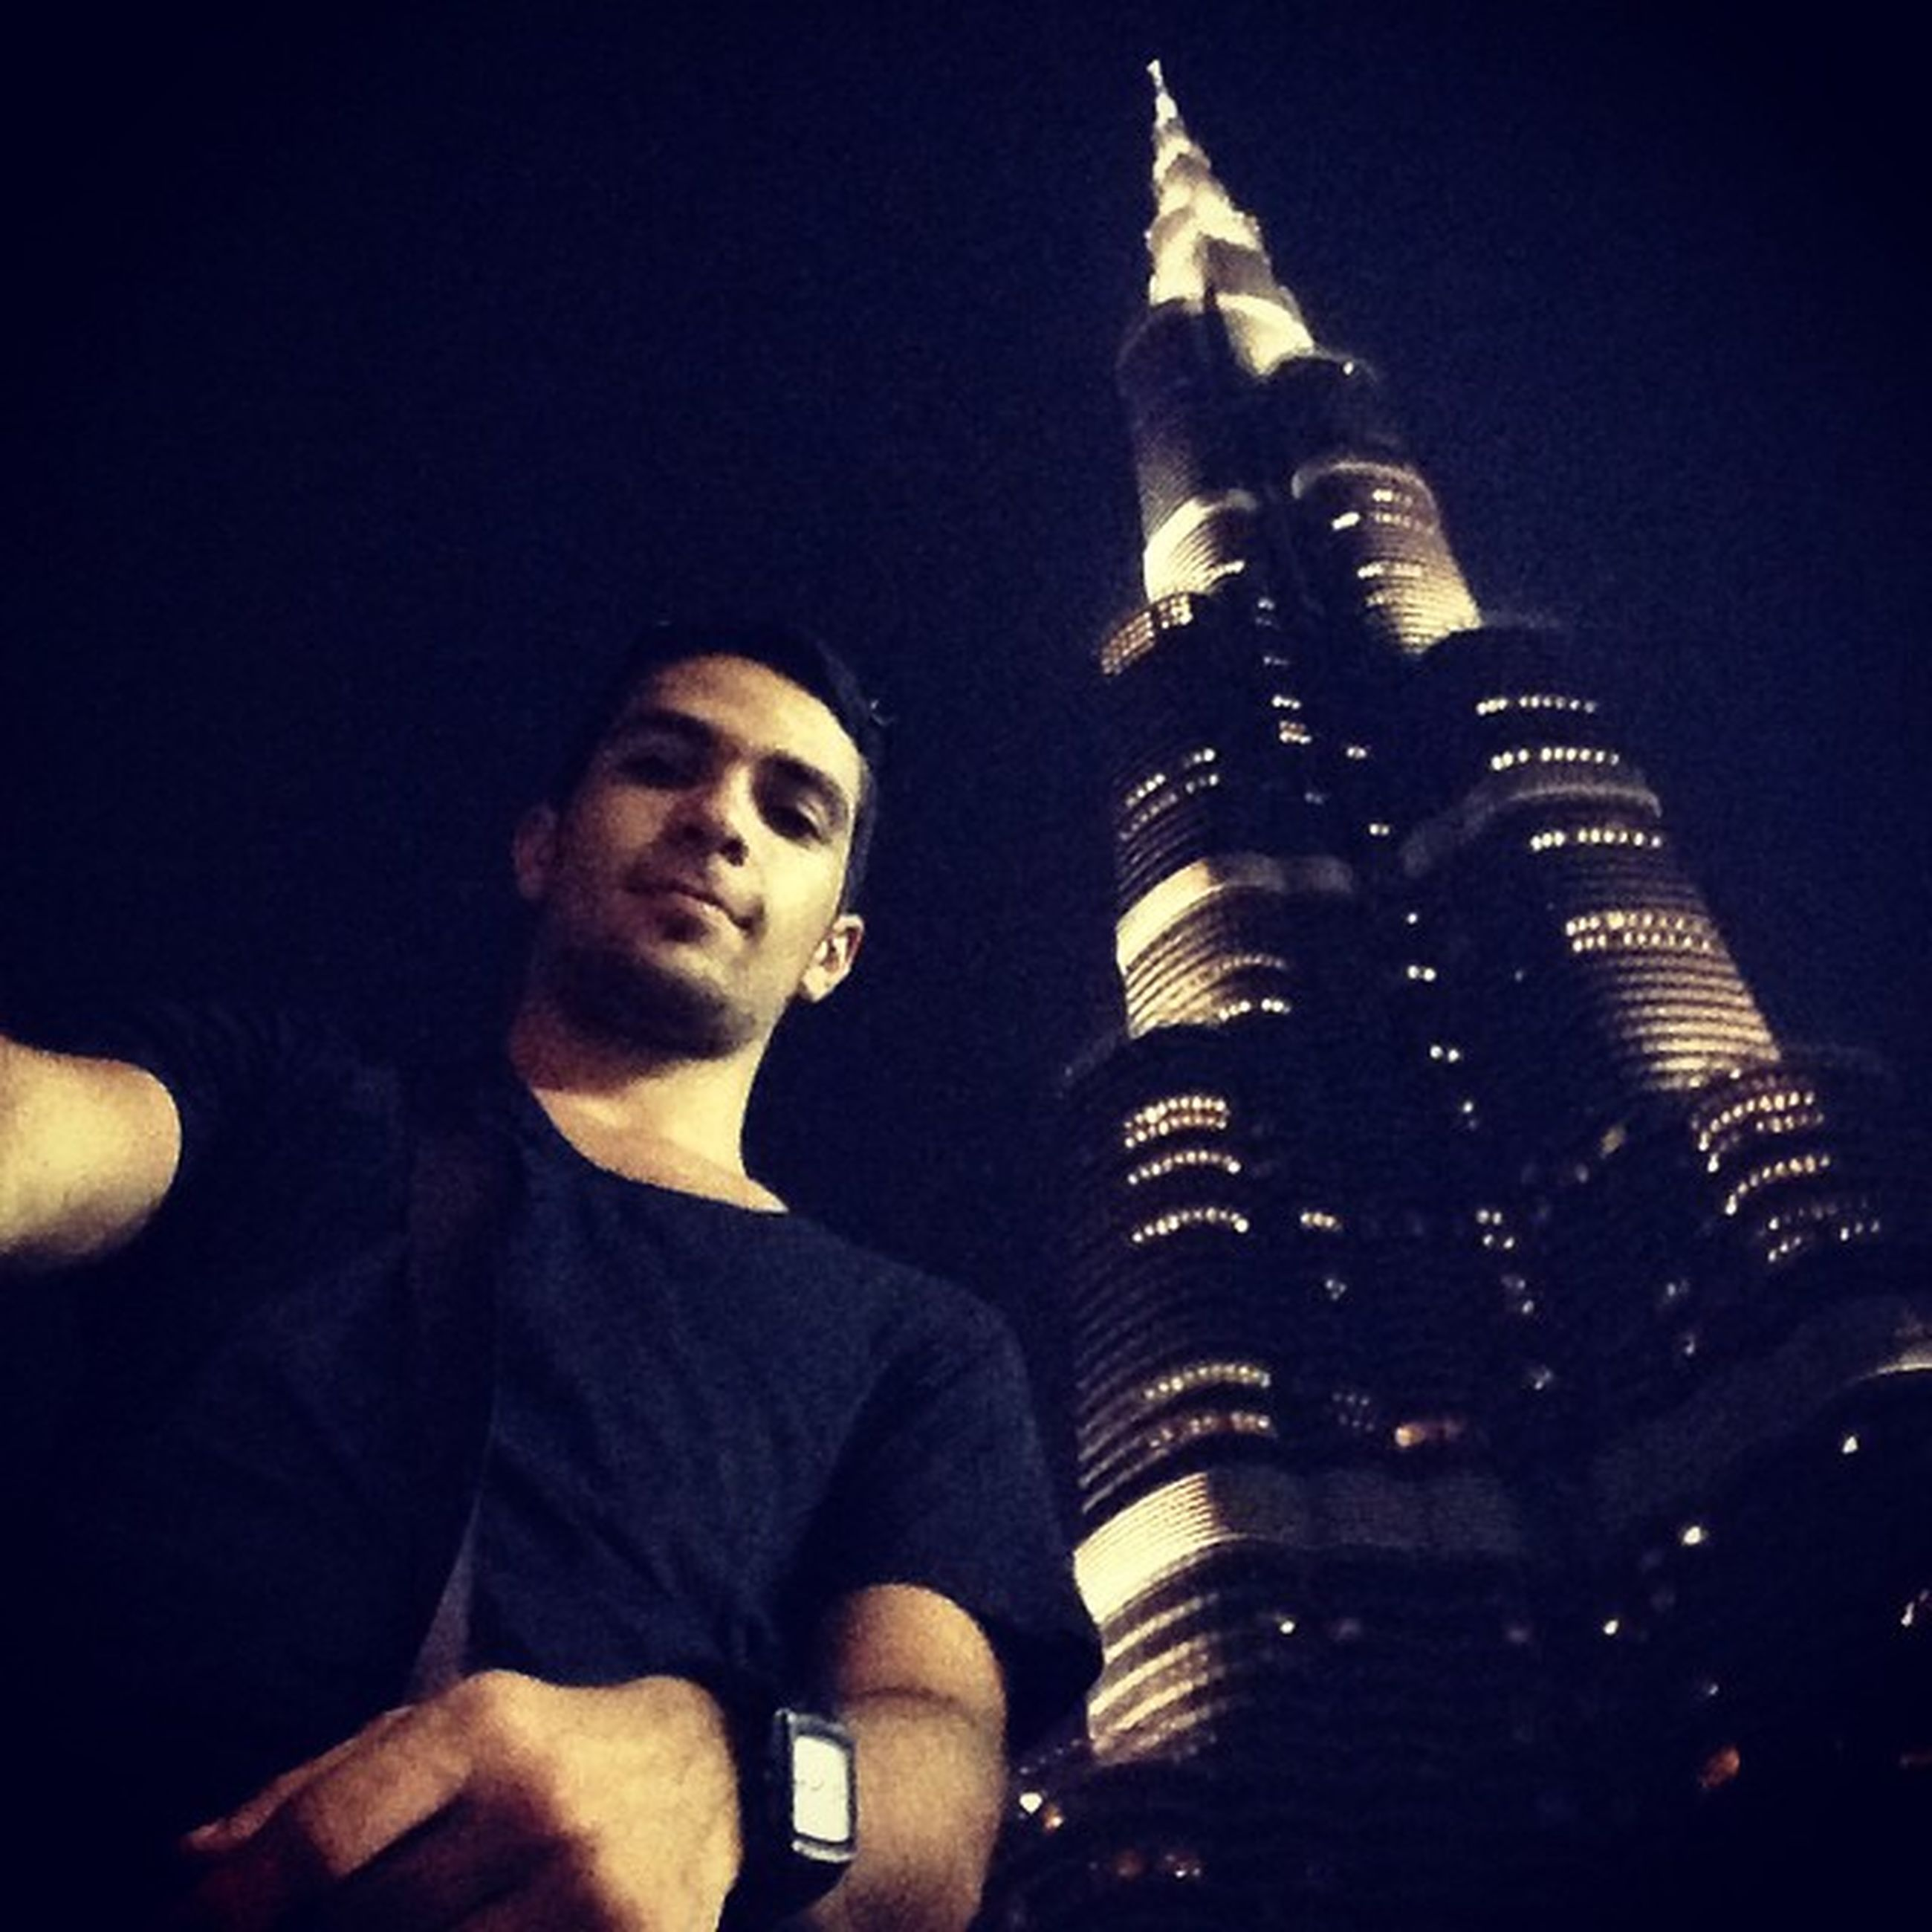 lifestyles, young adult, architecture, leisure activity, built structure, building exterior, standing, night, casual clothing, waist up, city, three quarter length, illuminated, looking at camera, person, young men, front view